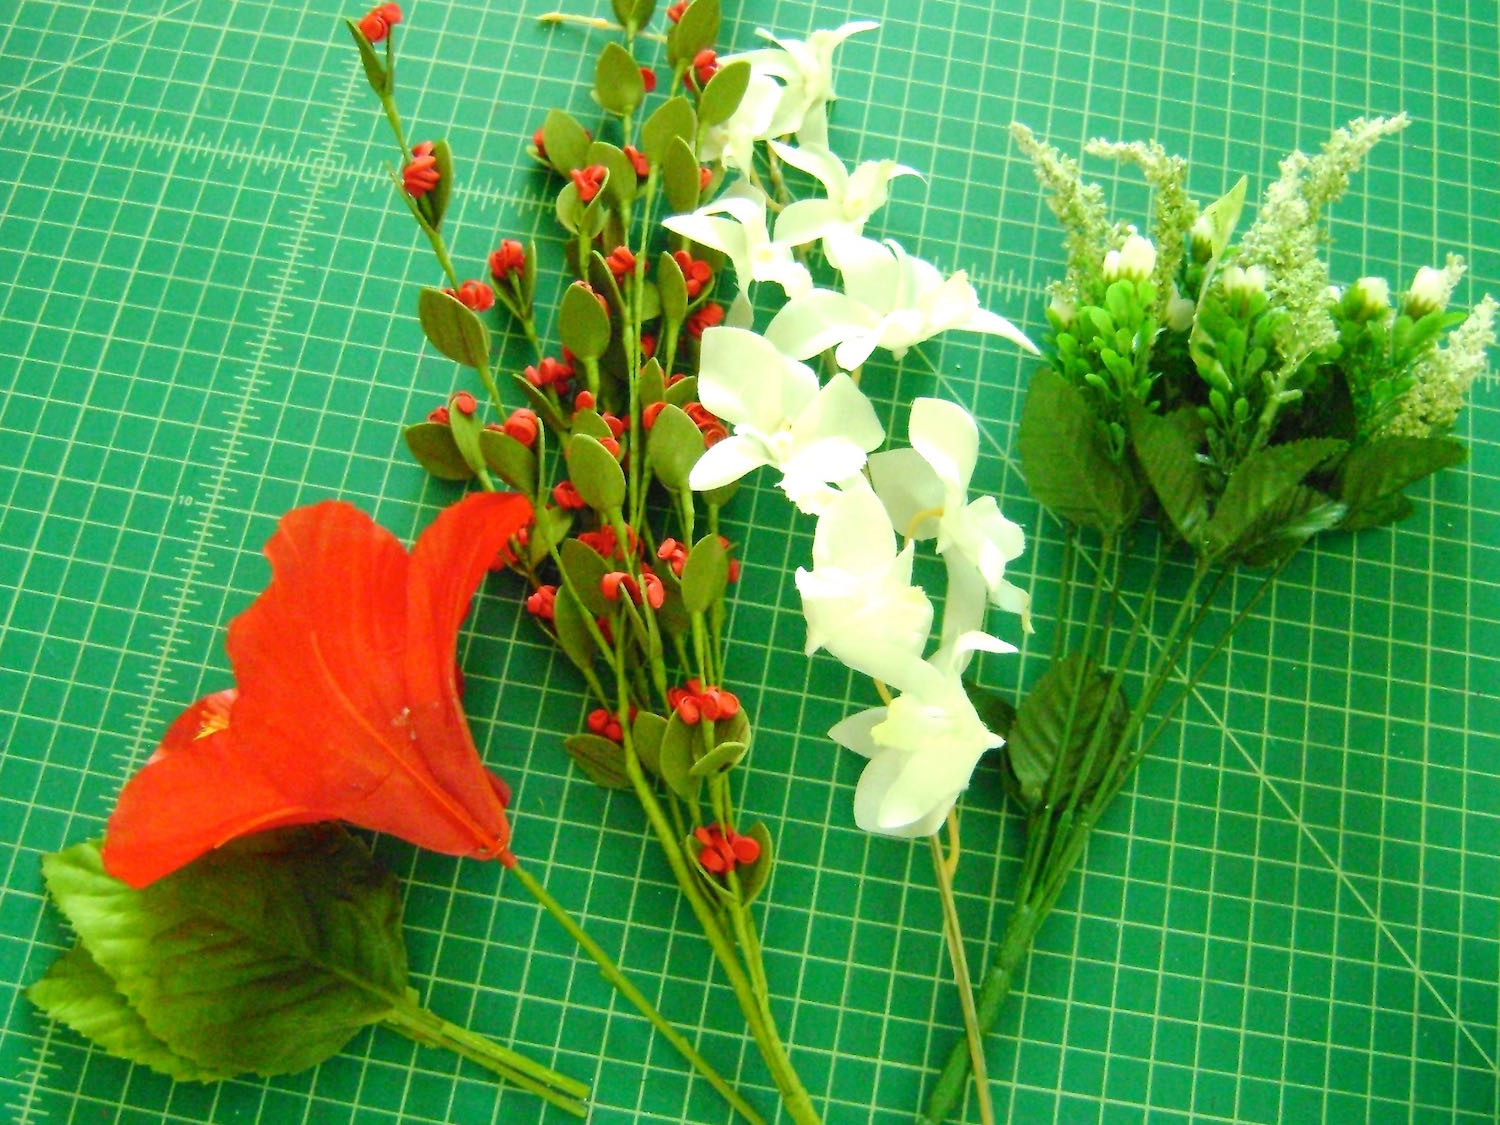 step 2 - Use 3 or 4 different kinds of flowers and sprays mixing sizes and colors. Cut the stems to about one inch long.